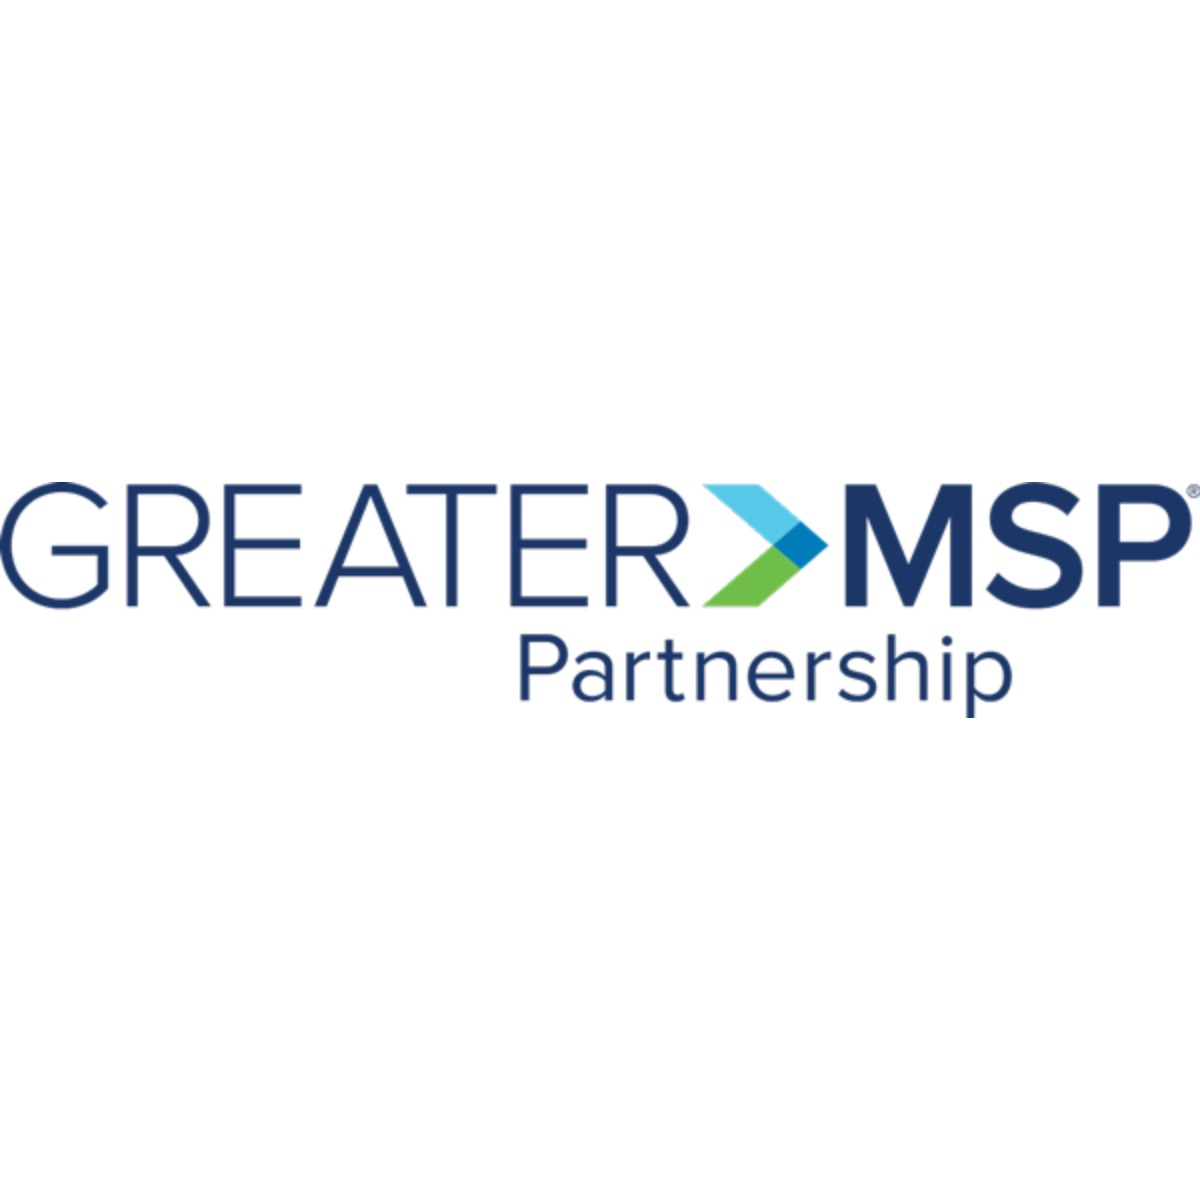 GREATER MSP